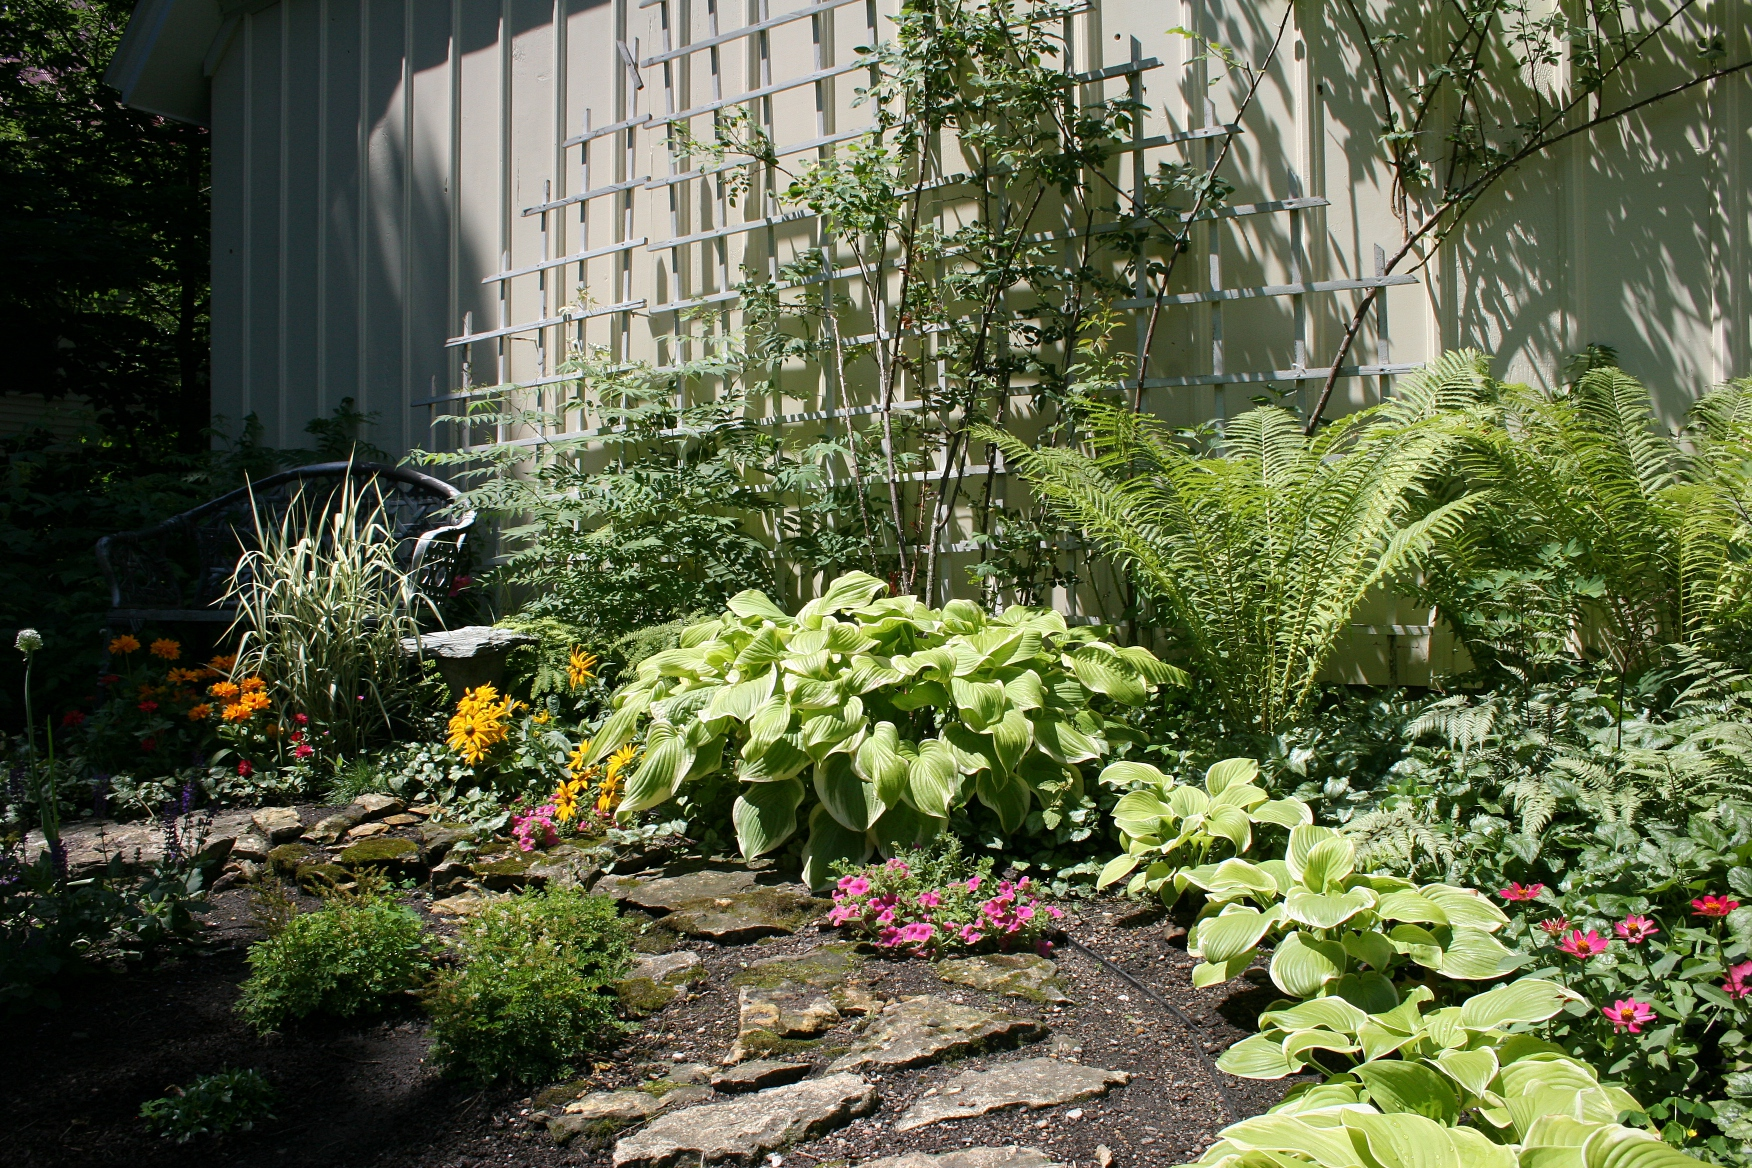 An Inviting Spot, Complete With Trellis, To Sit A Spell Next To The Garage